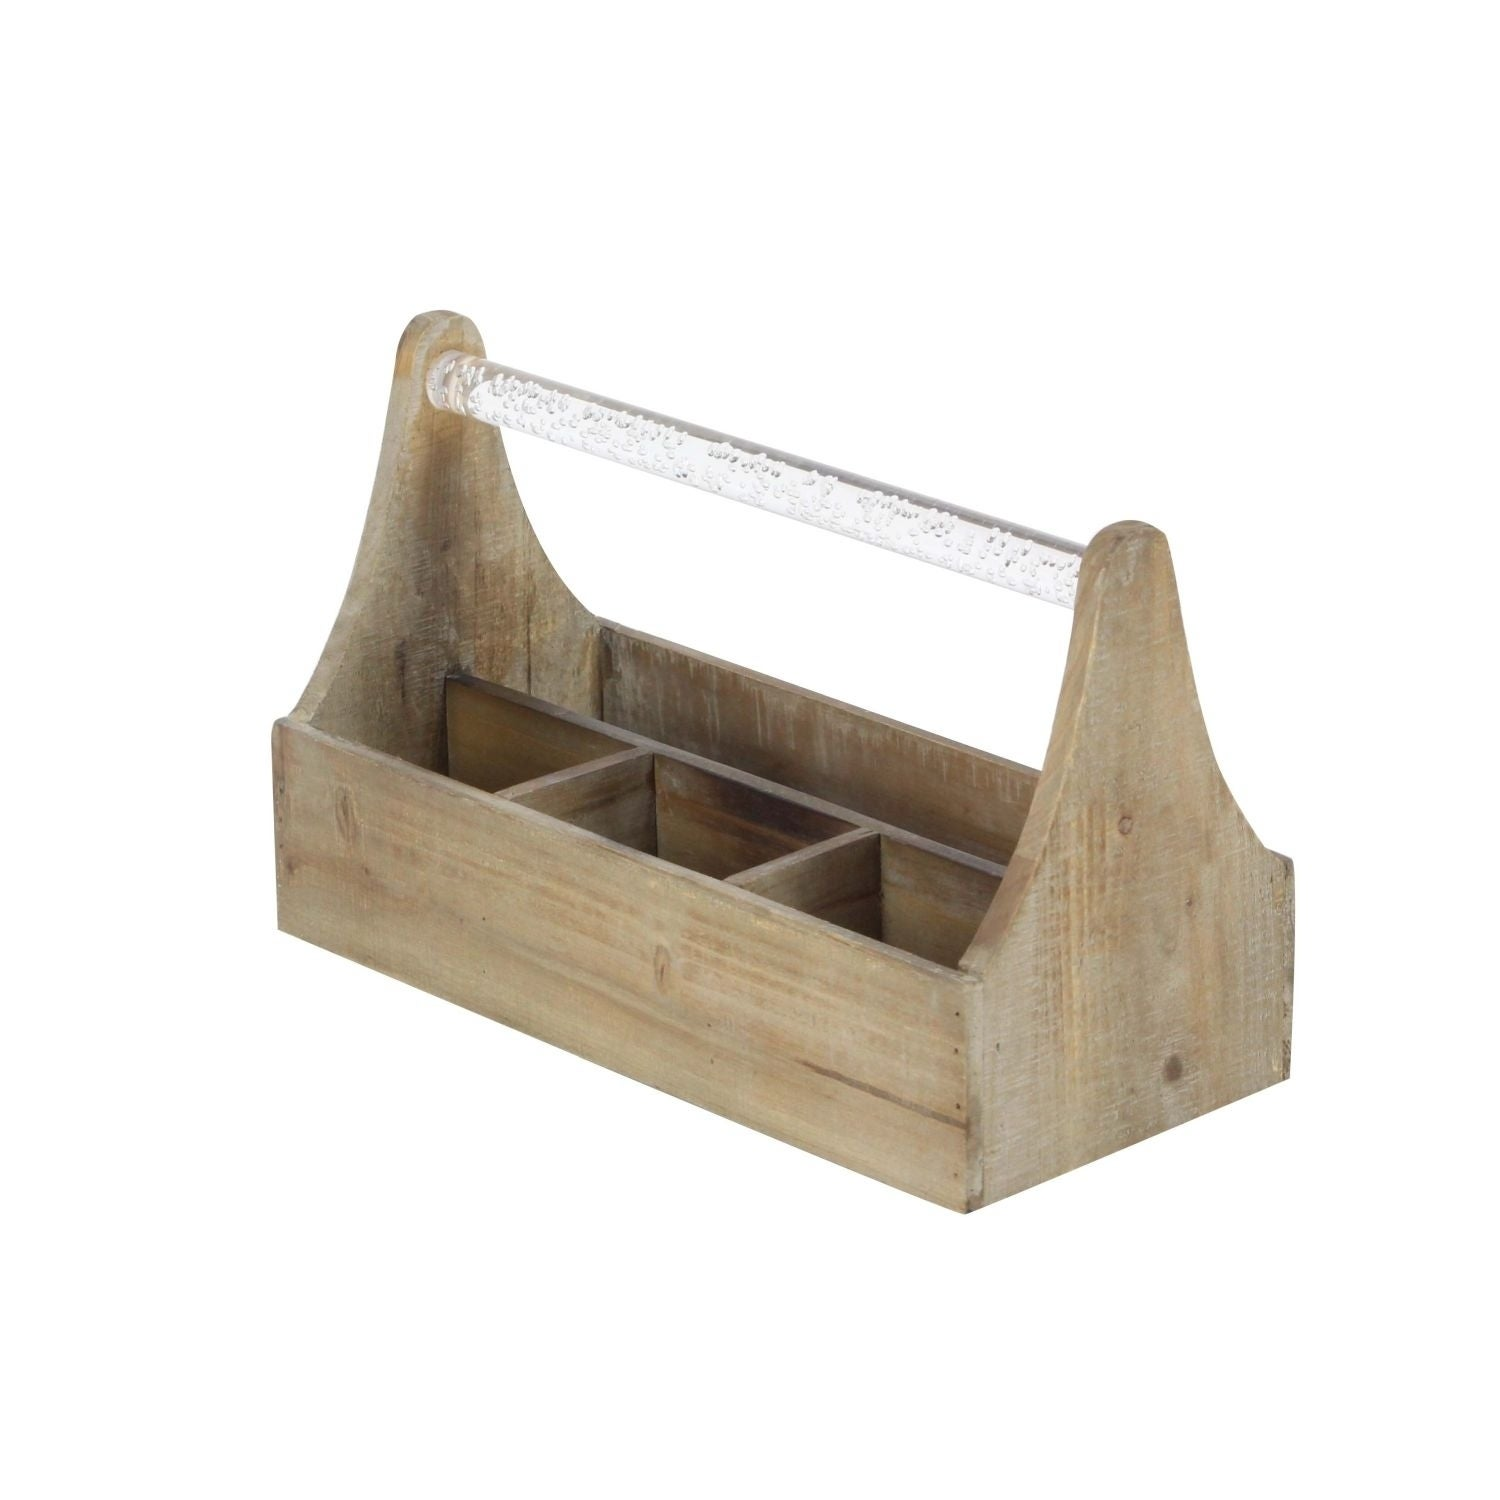 Studio 350 Wood Acrylic Wine Holder 12 inches wide, 7 inc...